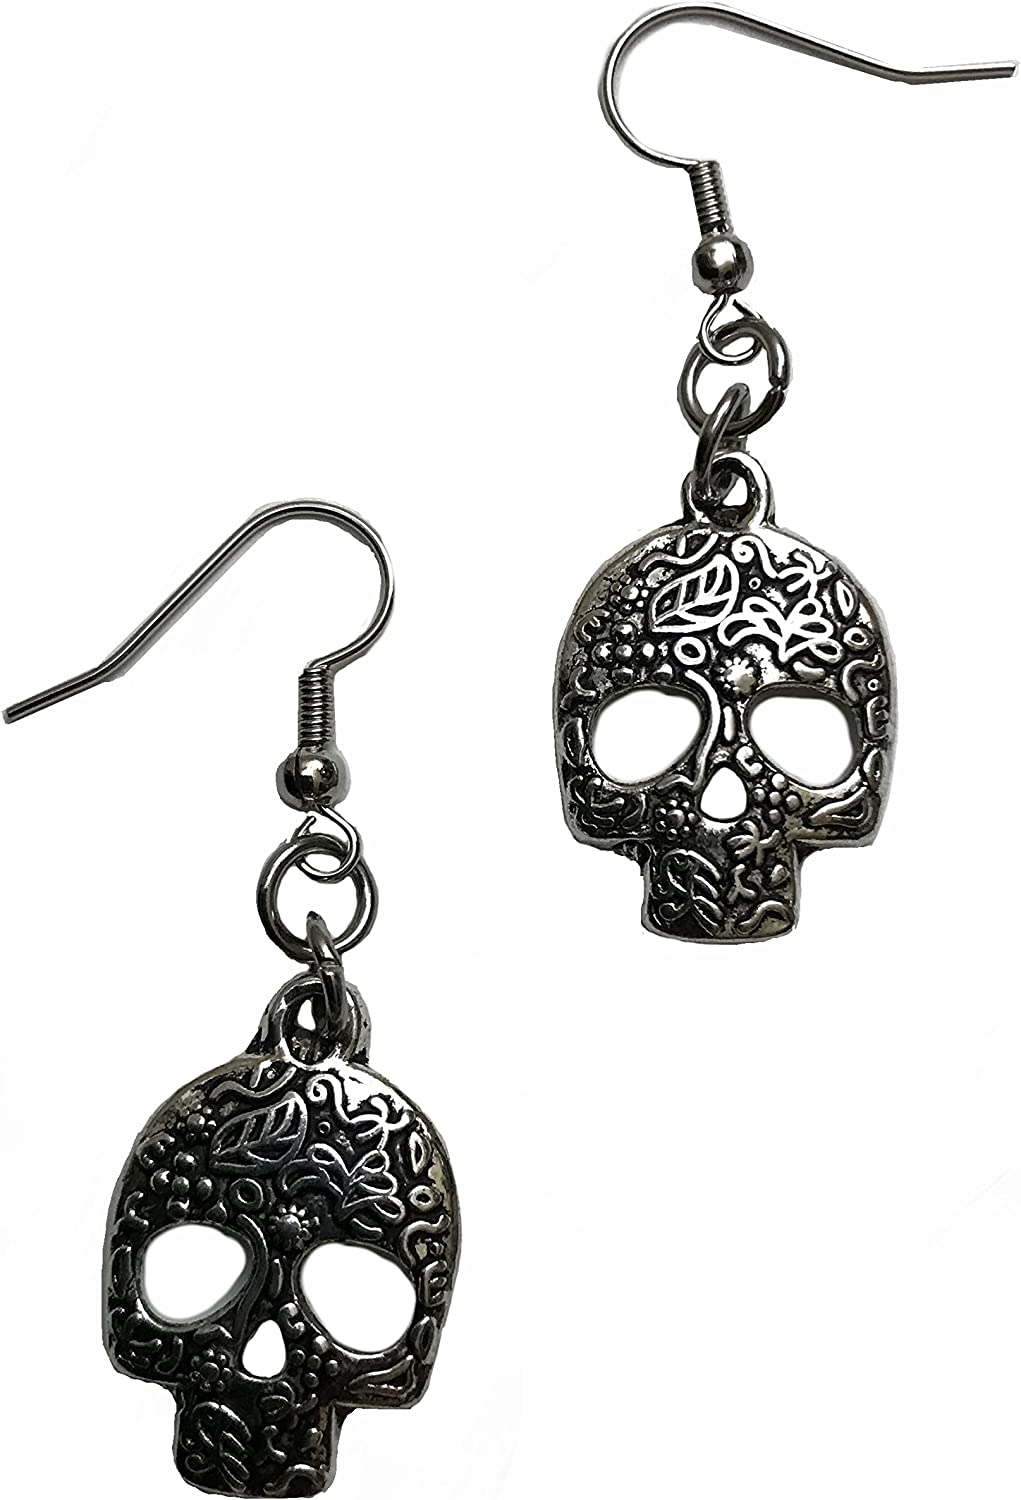 Lampwork with Skull and Leaves Bright Lampwork Earrings Skully Southwestern Style Dia de los Muertos E92 Gifts for Mom Gifts for Mom